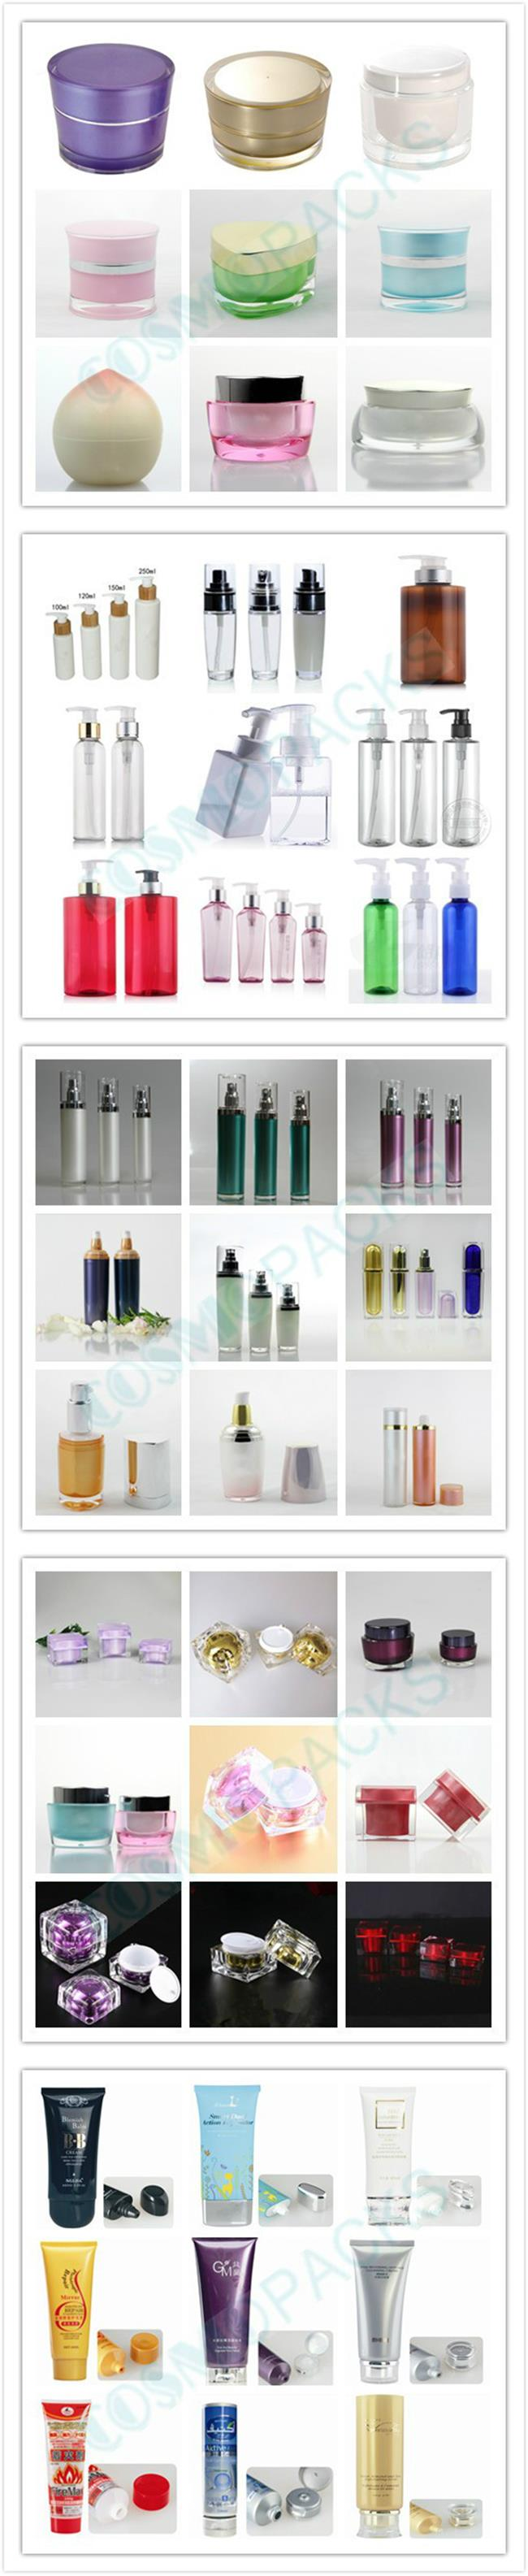 30ml 50ml 30g Frosted Glass Jar Travel Cosmetic Bottle Set Dropper Bottle